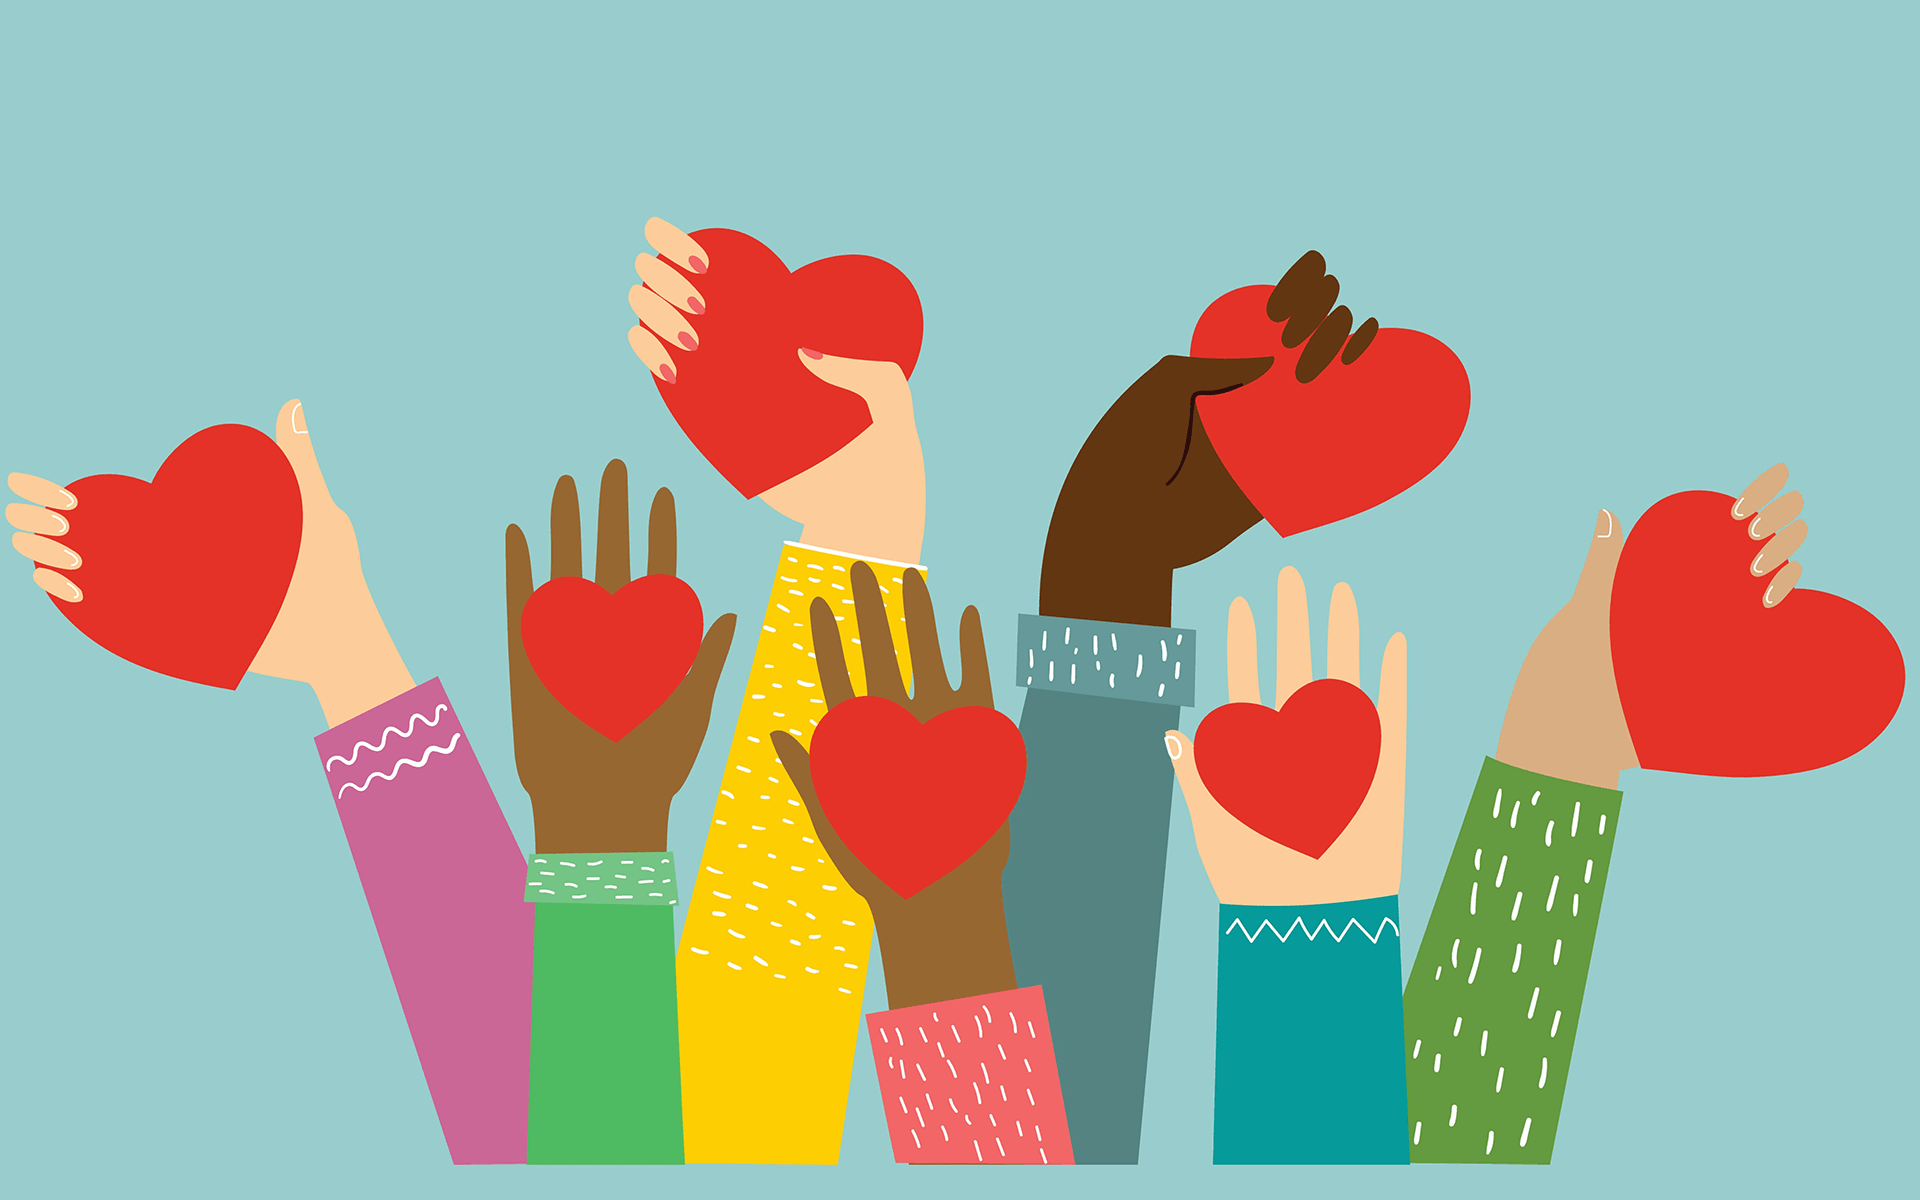 Illustration of hands of different skin tones reaching up holding red hearts. Each arms has a different colored long sleeve.